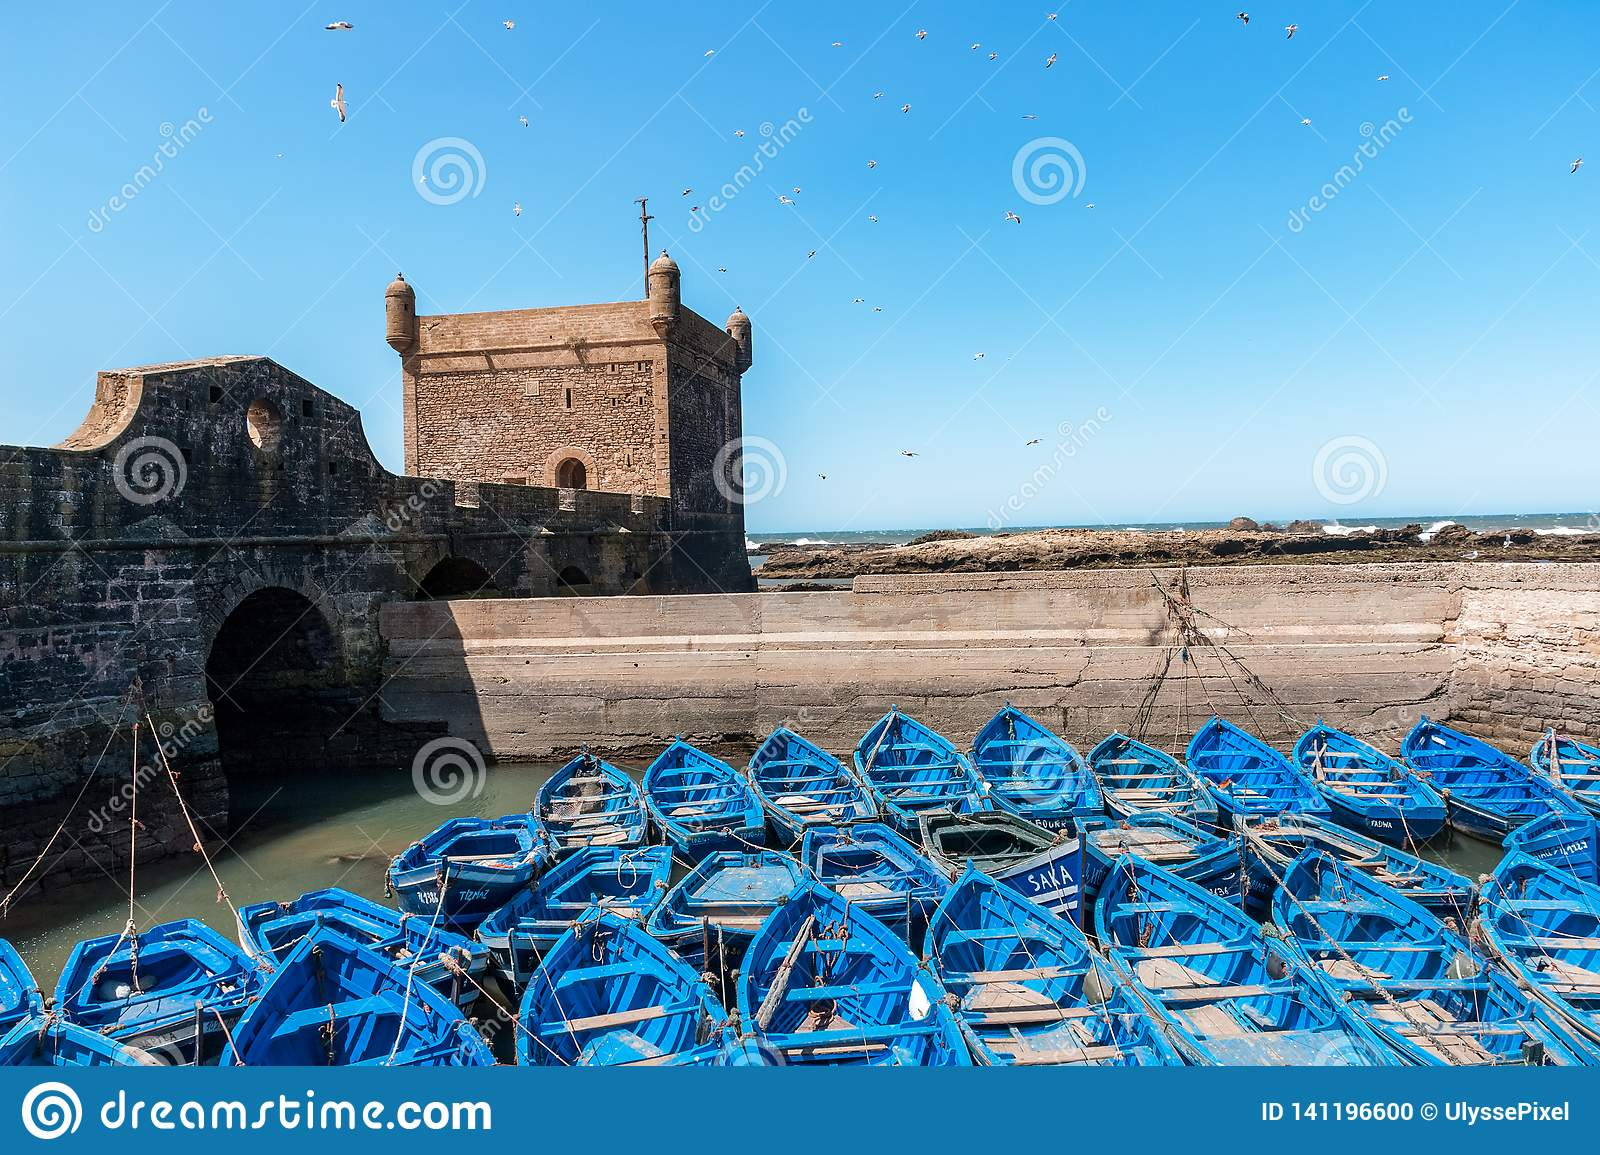 Blue Fishing boats and defensive tower in Essaouira - Morocco